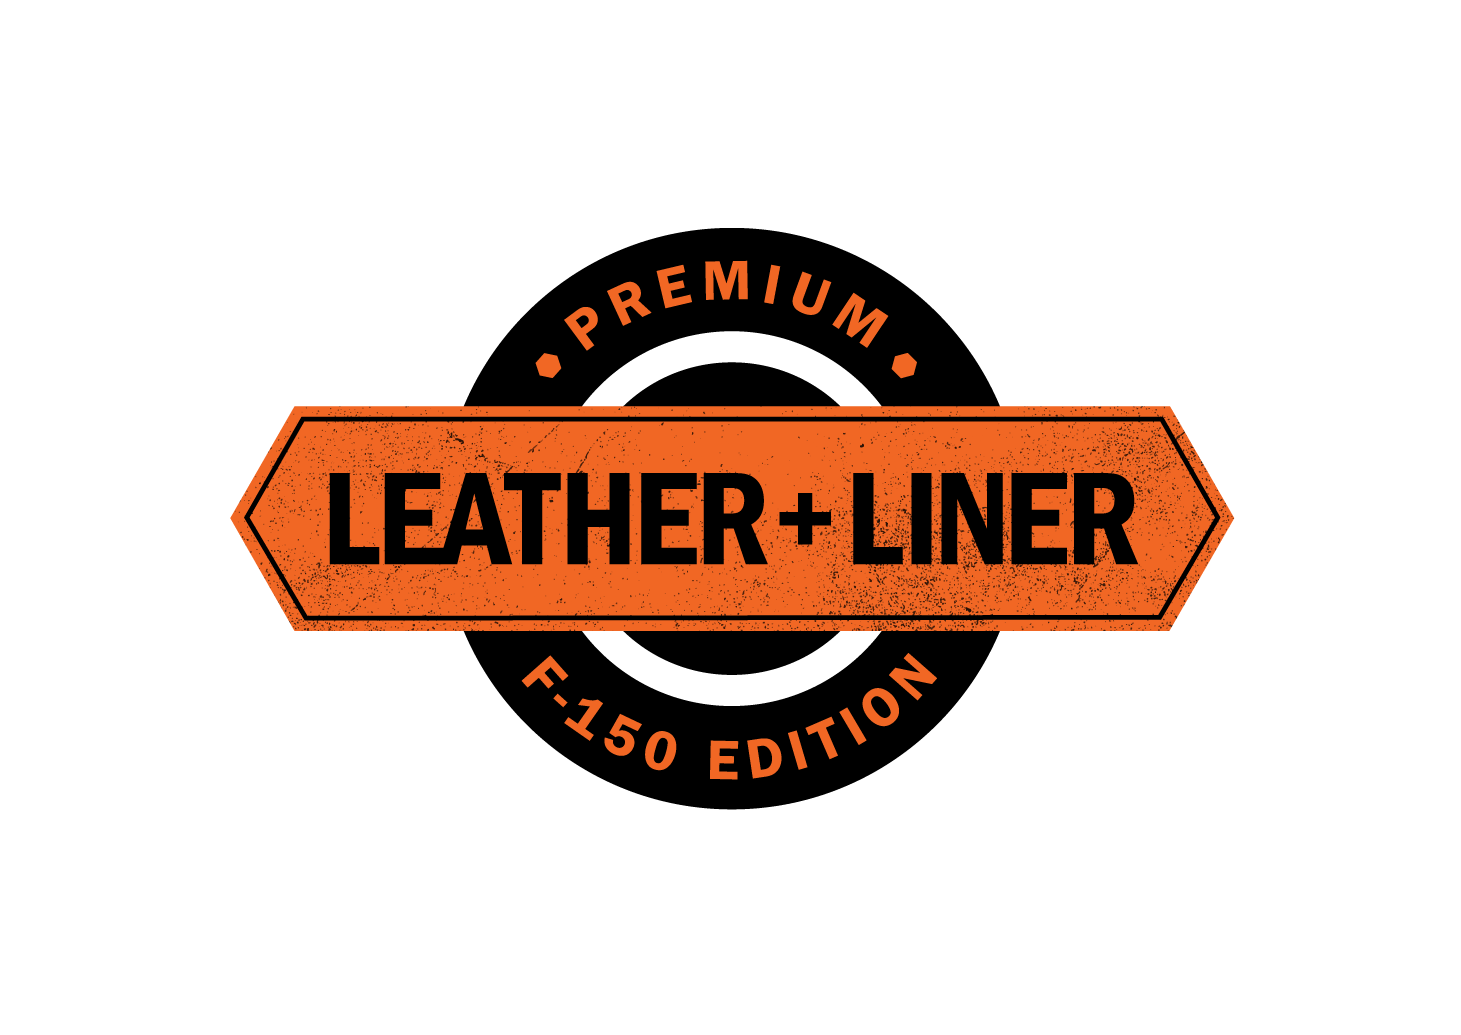 Coupon for Leather Liner Package Sandy Sansing Ford Leather and Spray in Liner